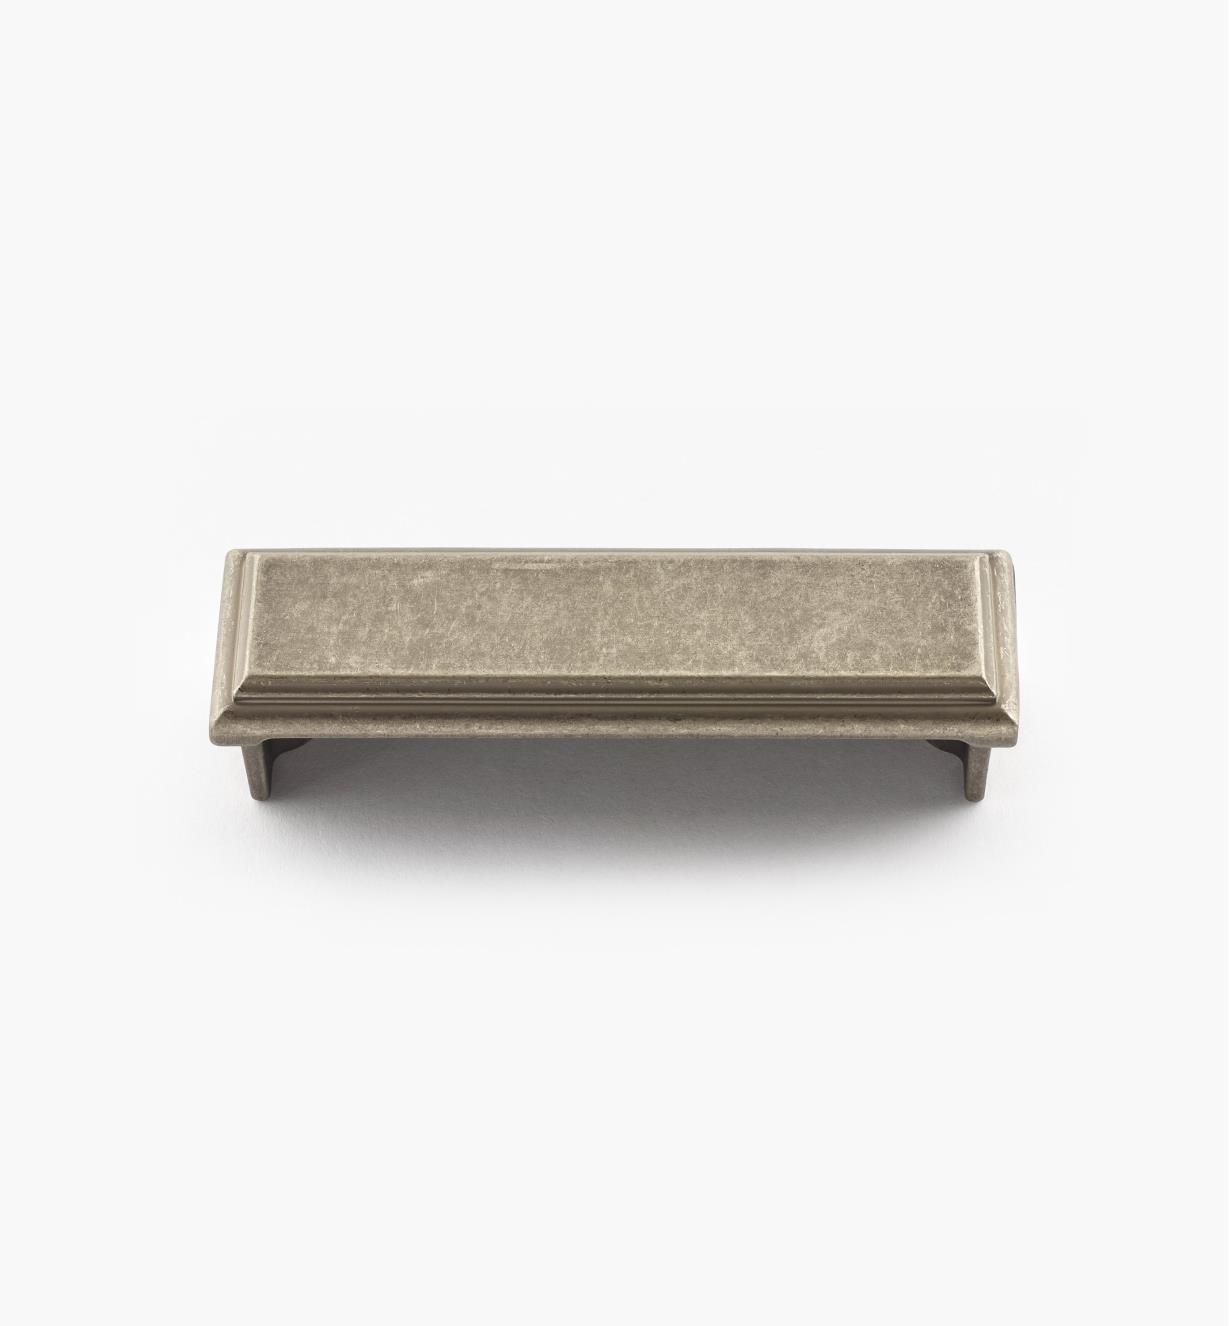 02A3956 - Manor Weathered Nickel Pull